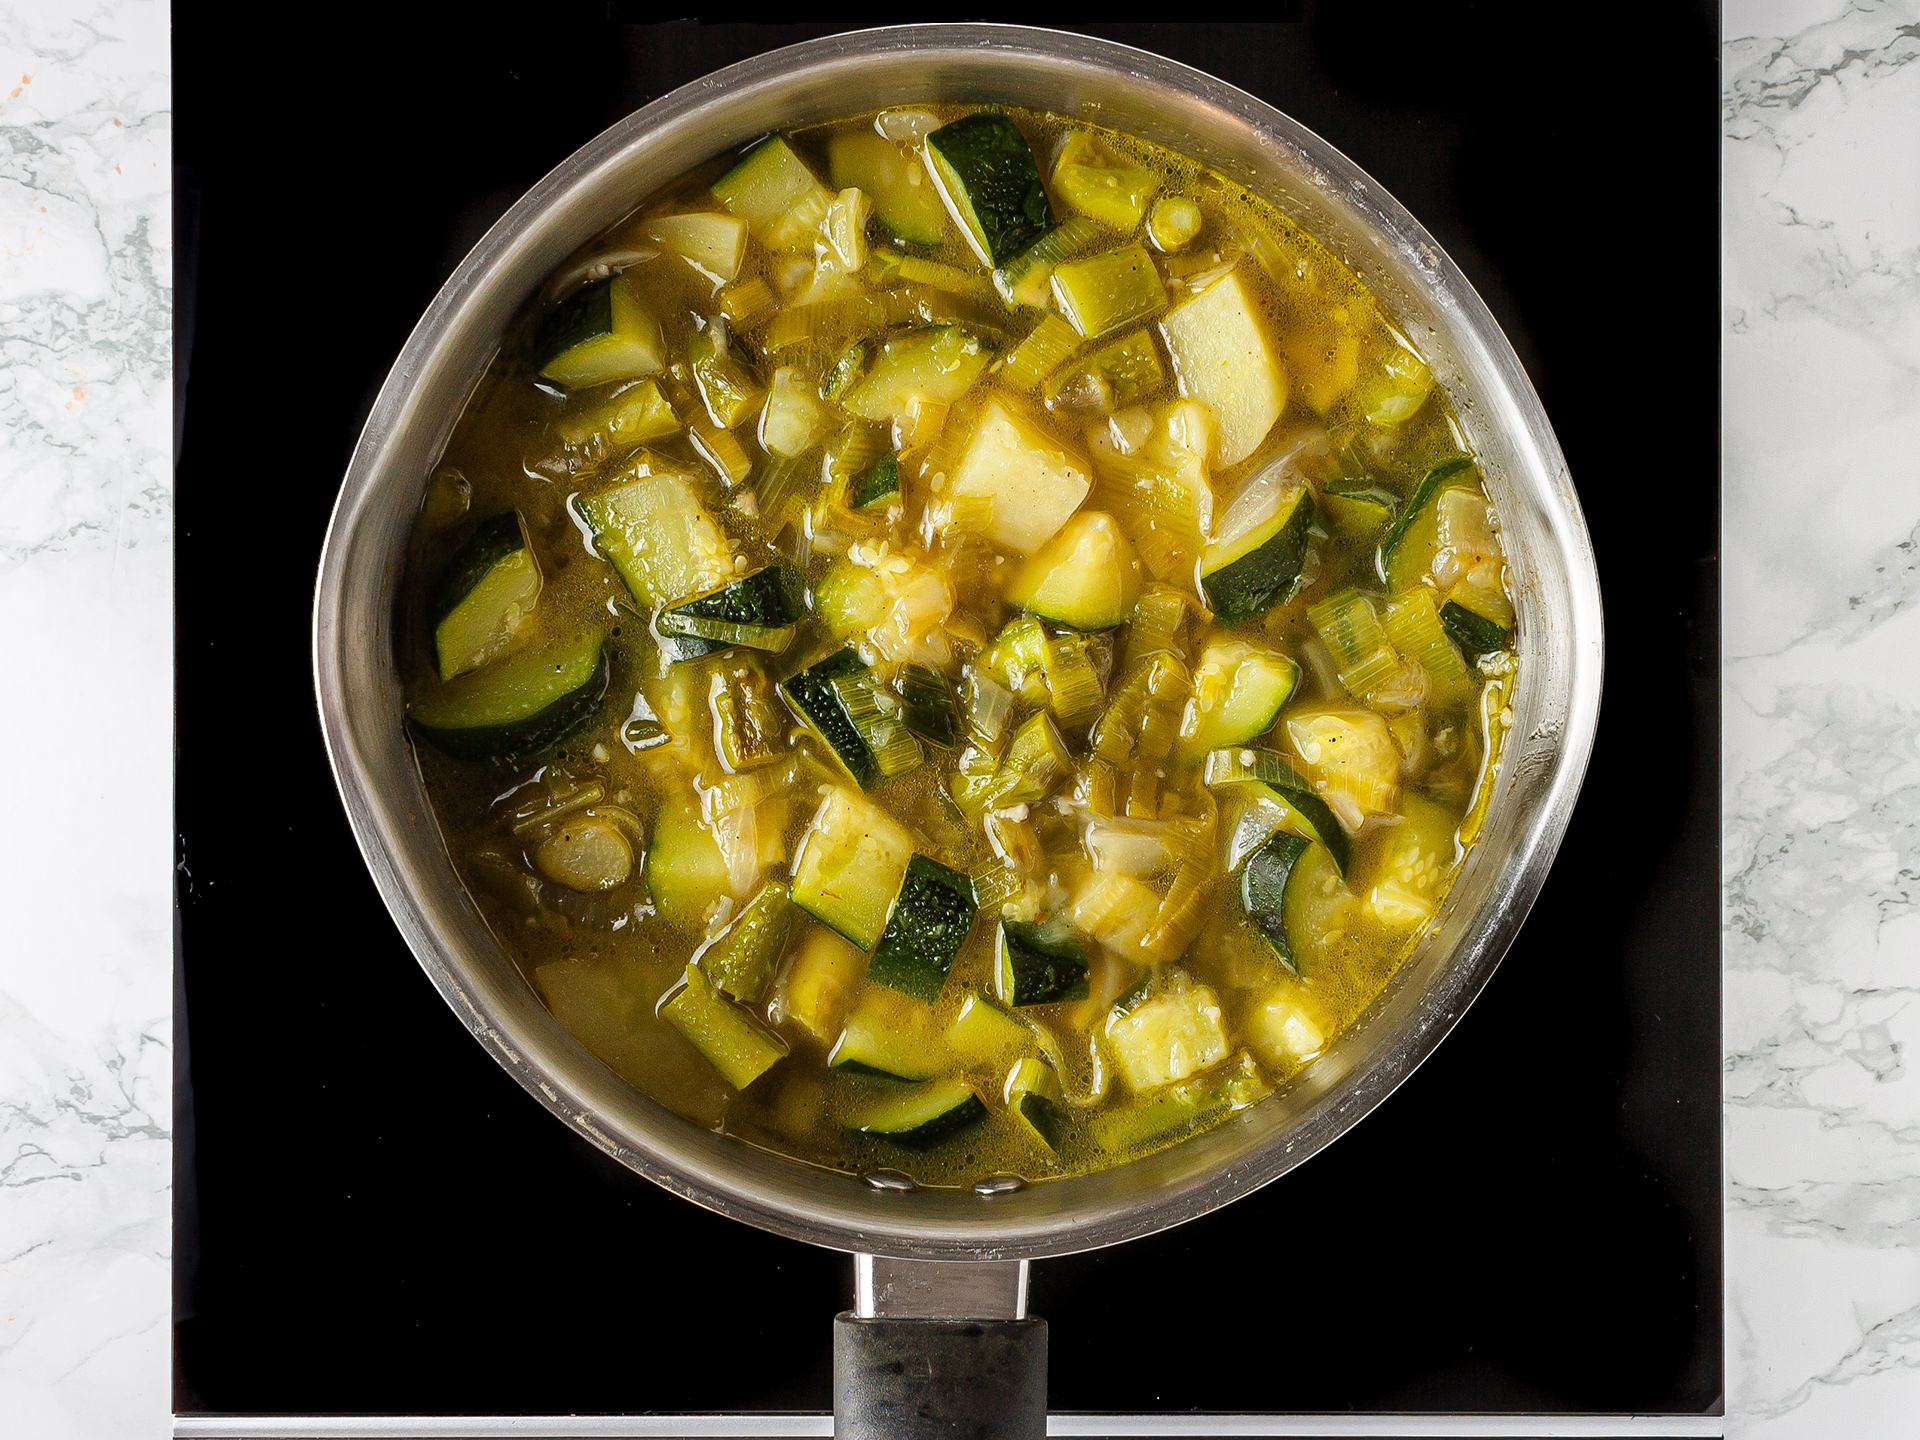 zucchini, asparagus, leek, and potato soup simmering in a pan